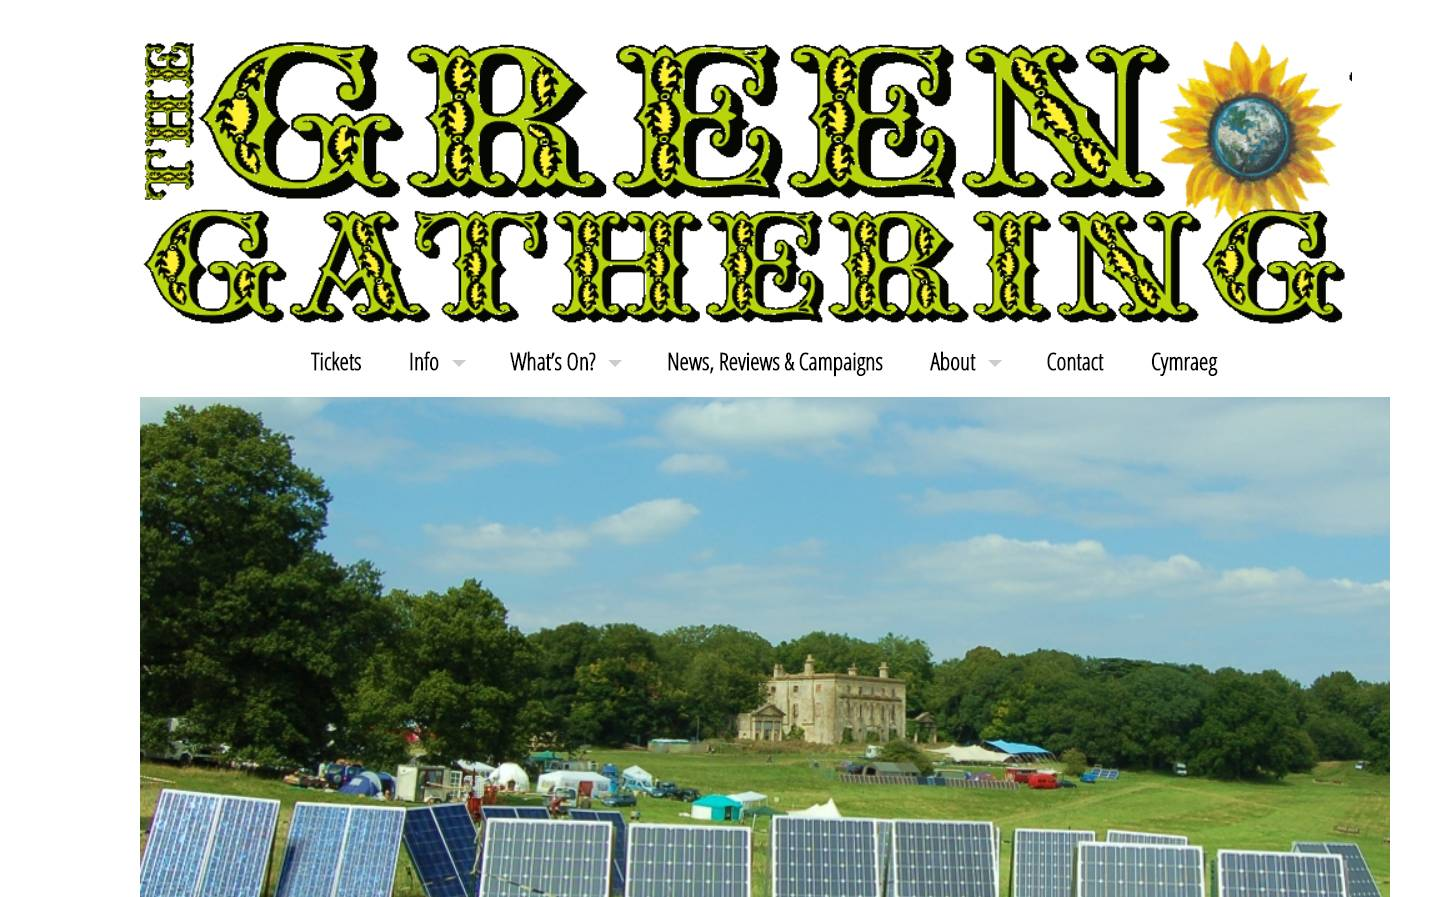 The_Green_Gathering_festival_-_music,_crafts,_alt_tech,_campaigns_and_more_-_2019-07-16_20.24.40.jpg